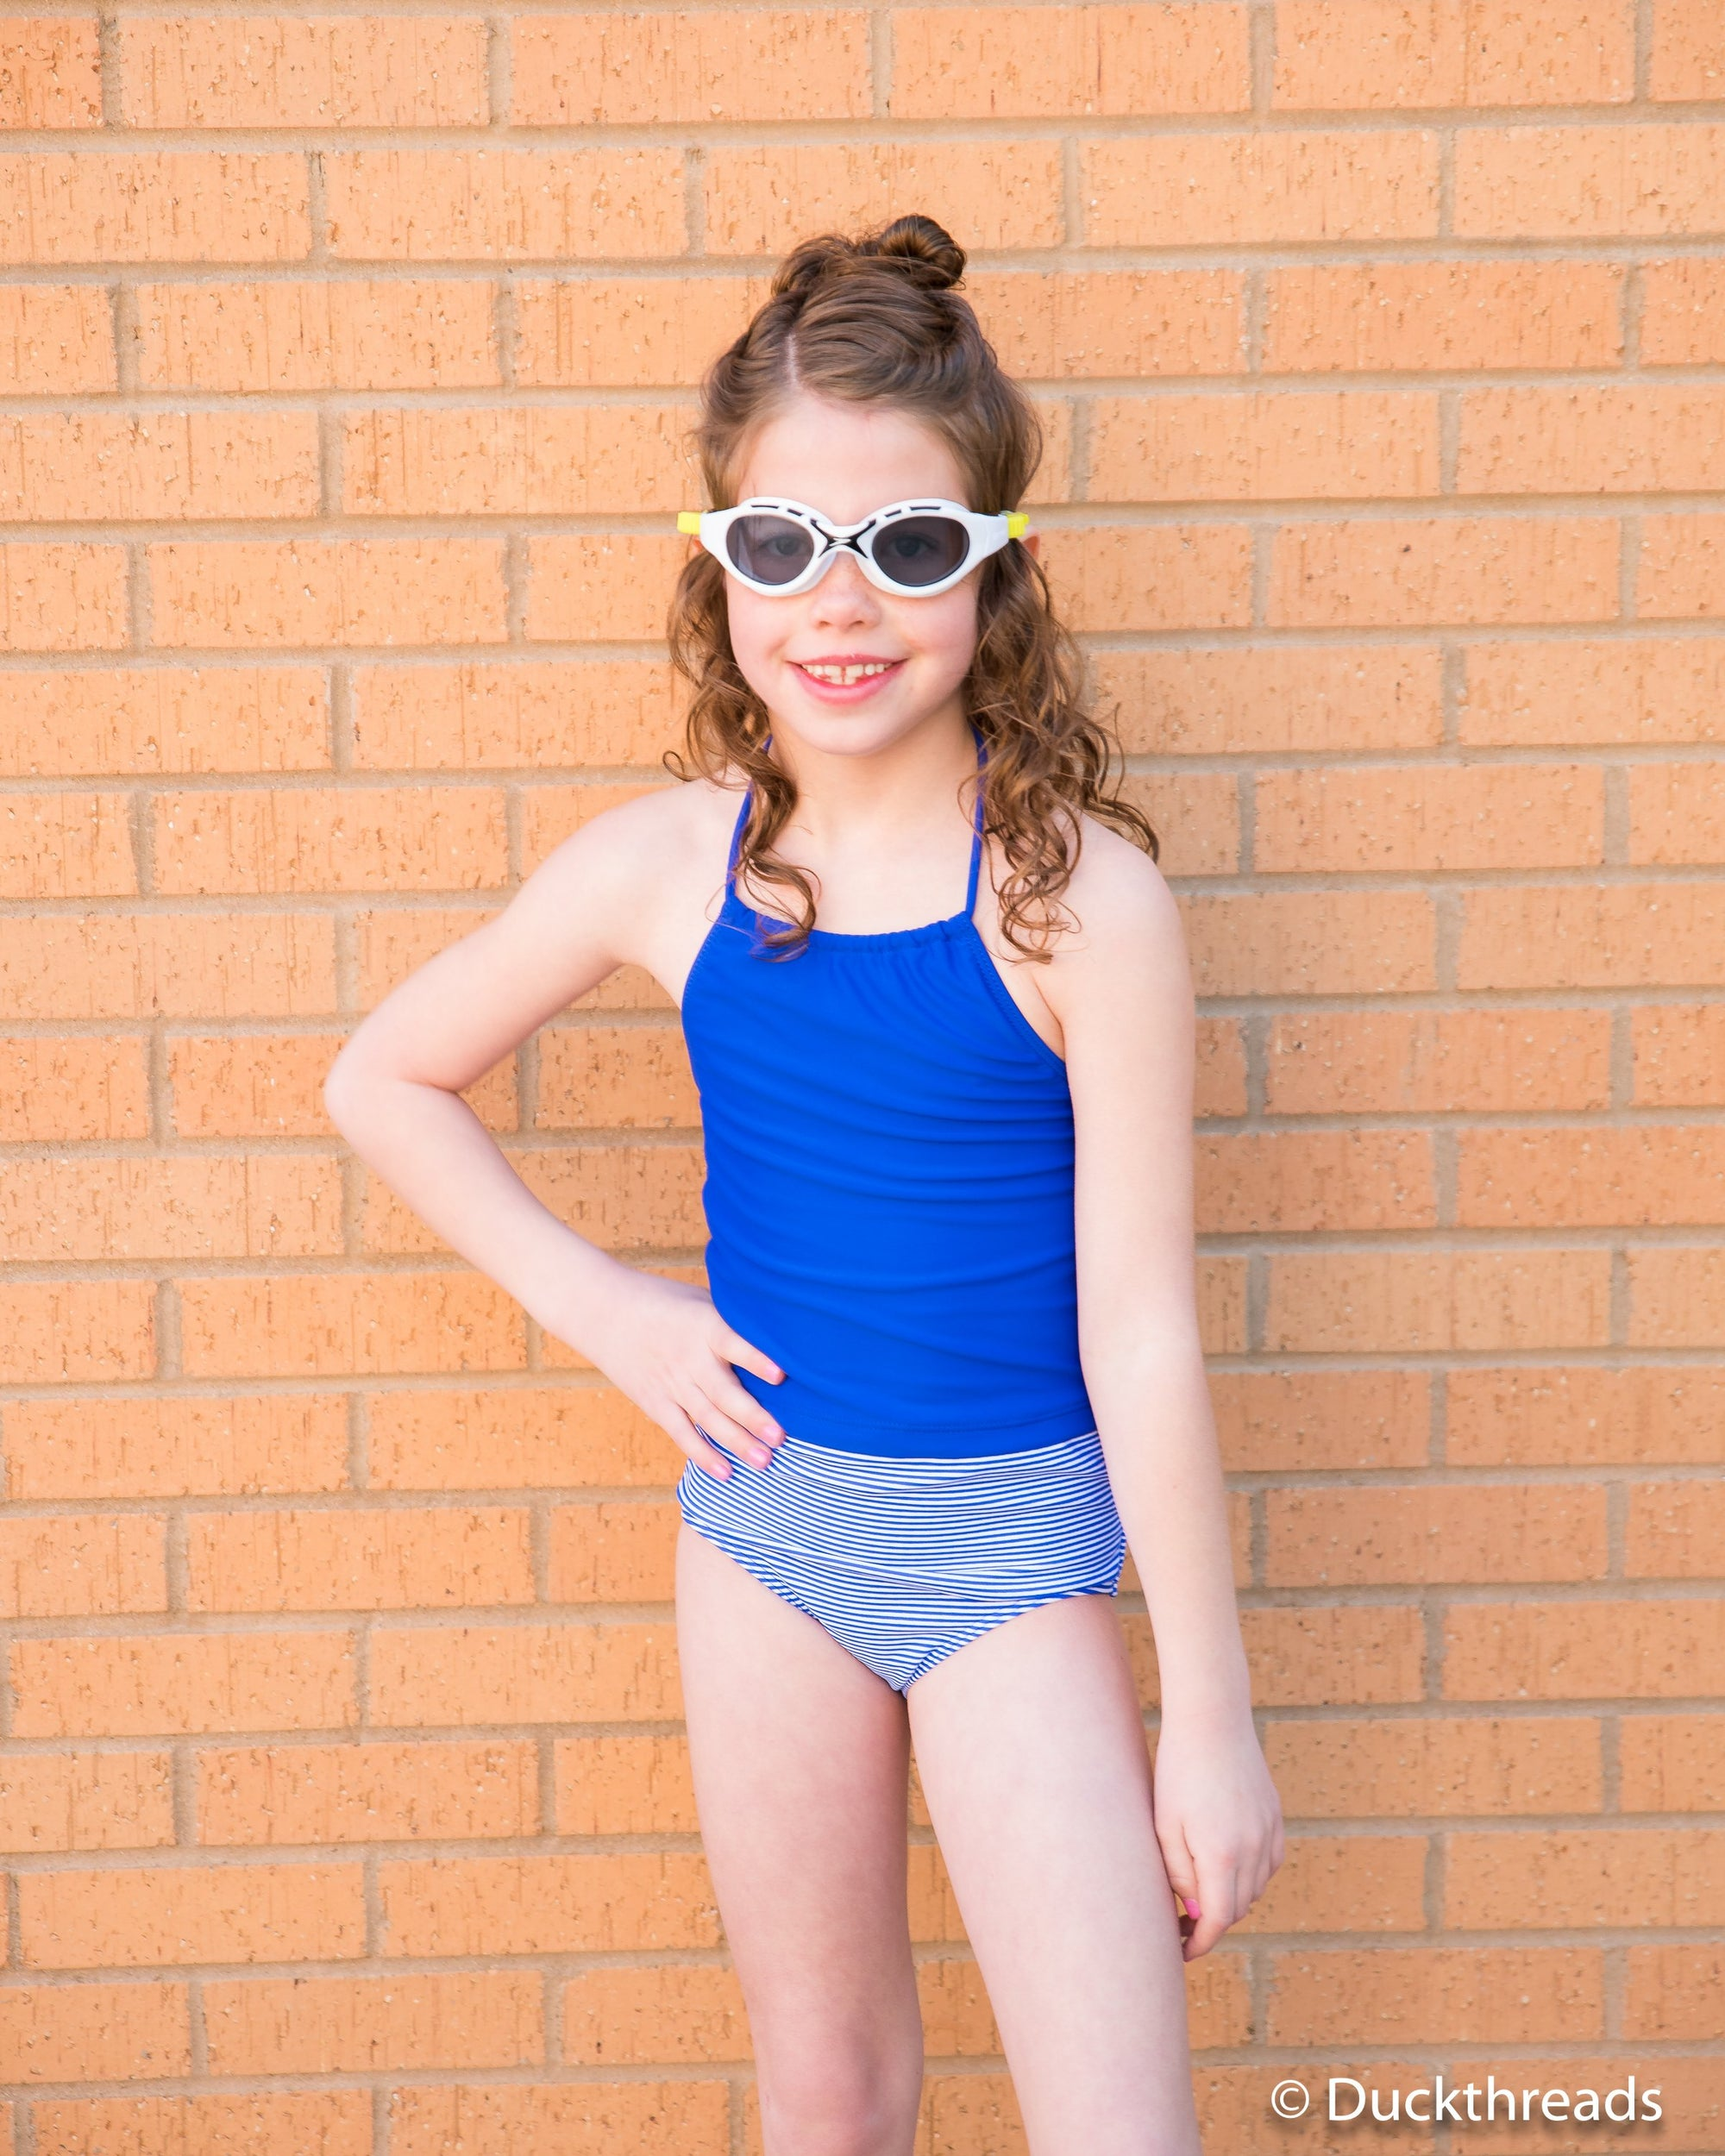 Royal Blue Swim top by Janela Bay Duckthreads